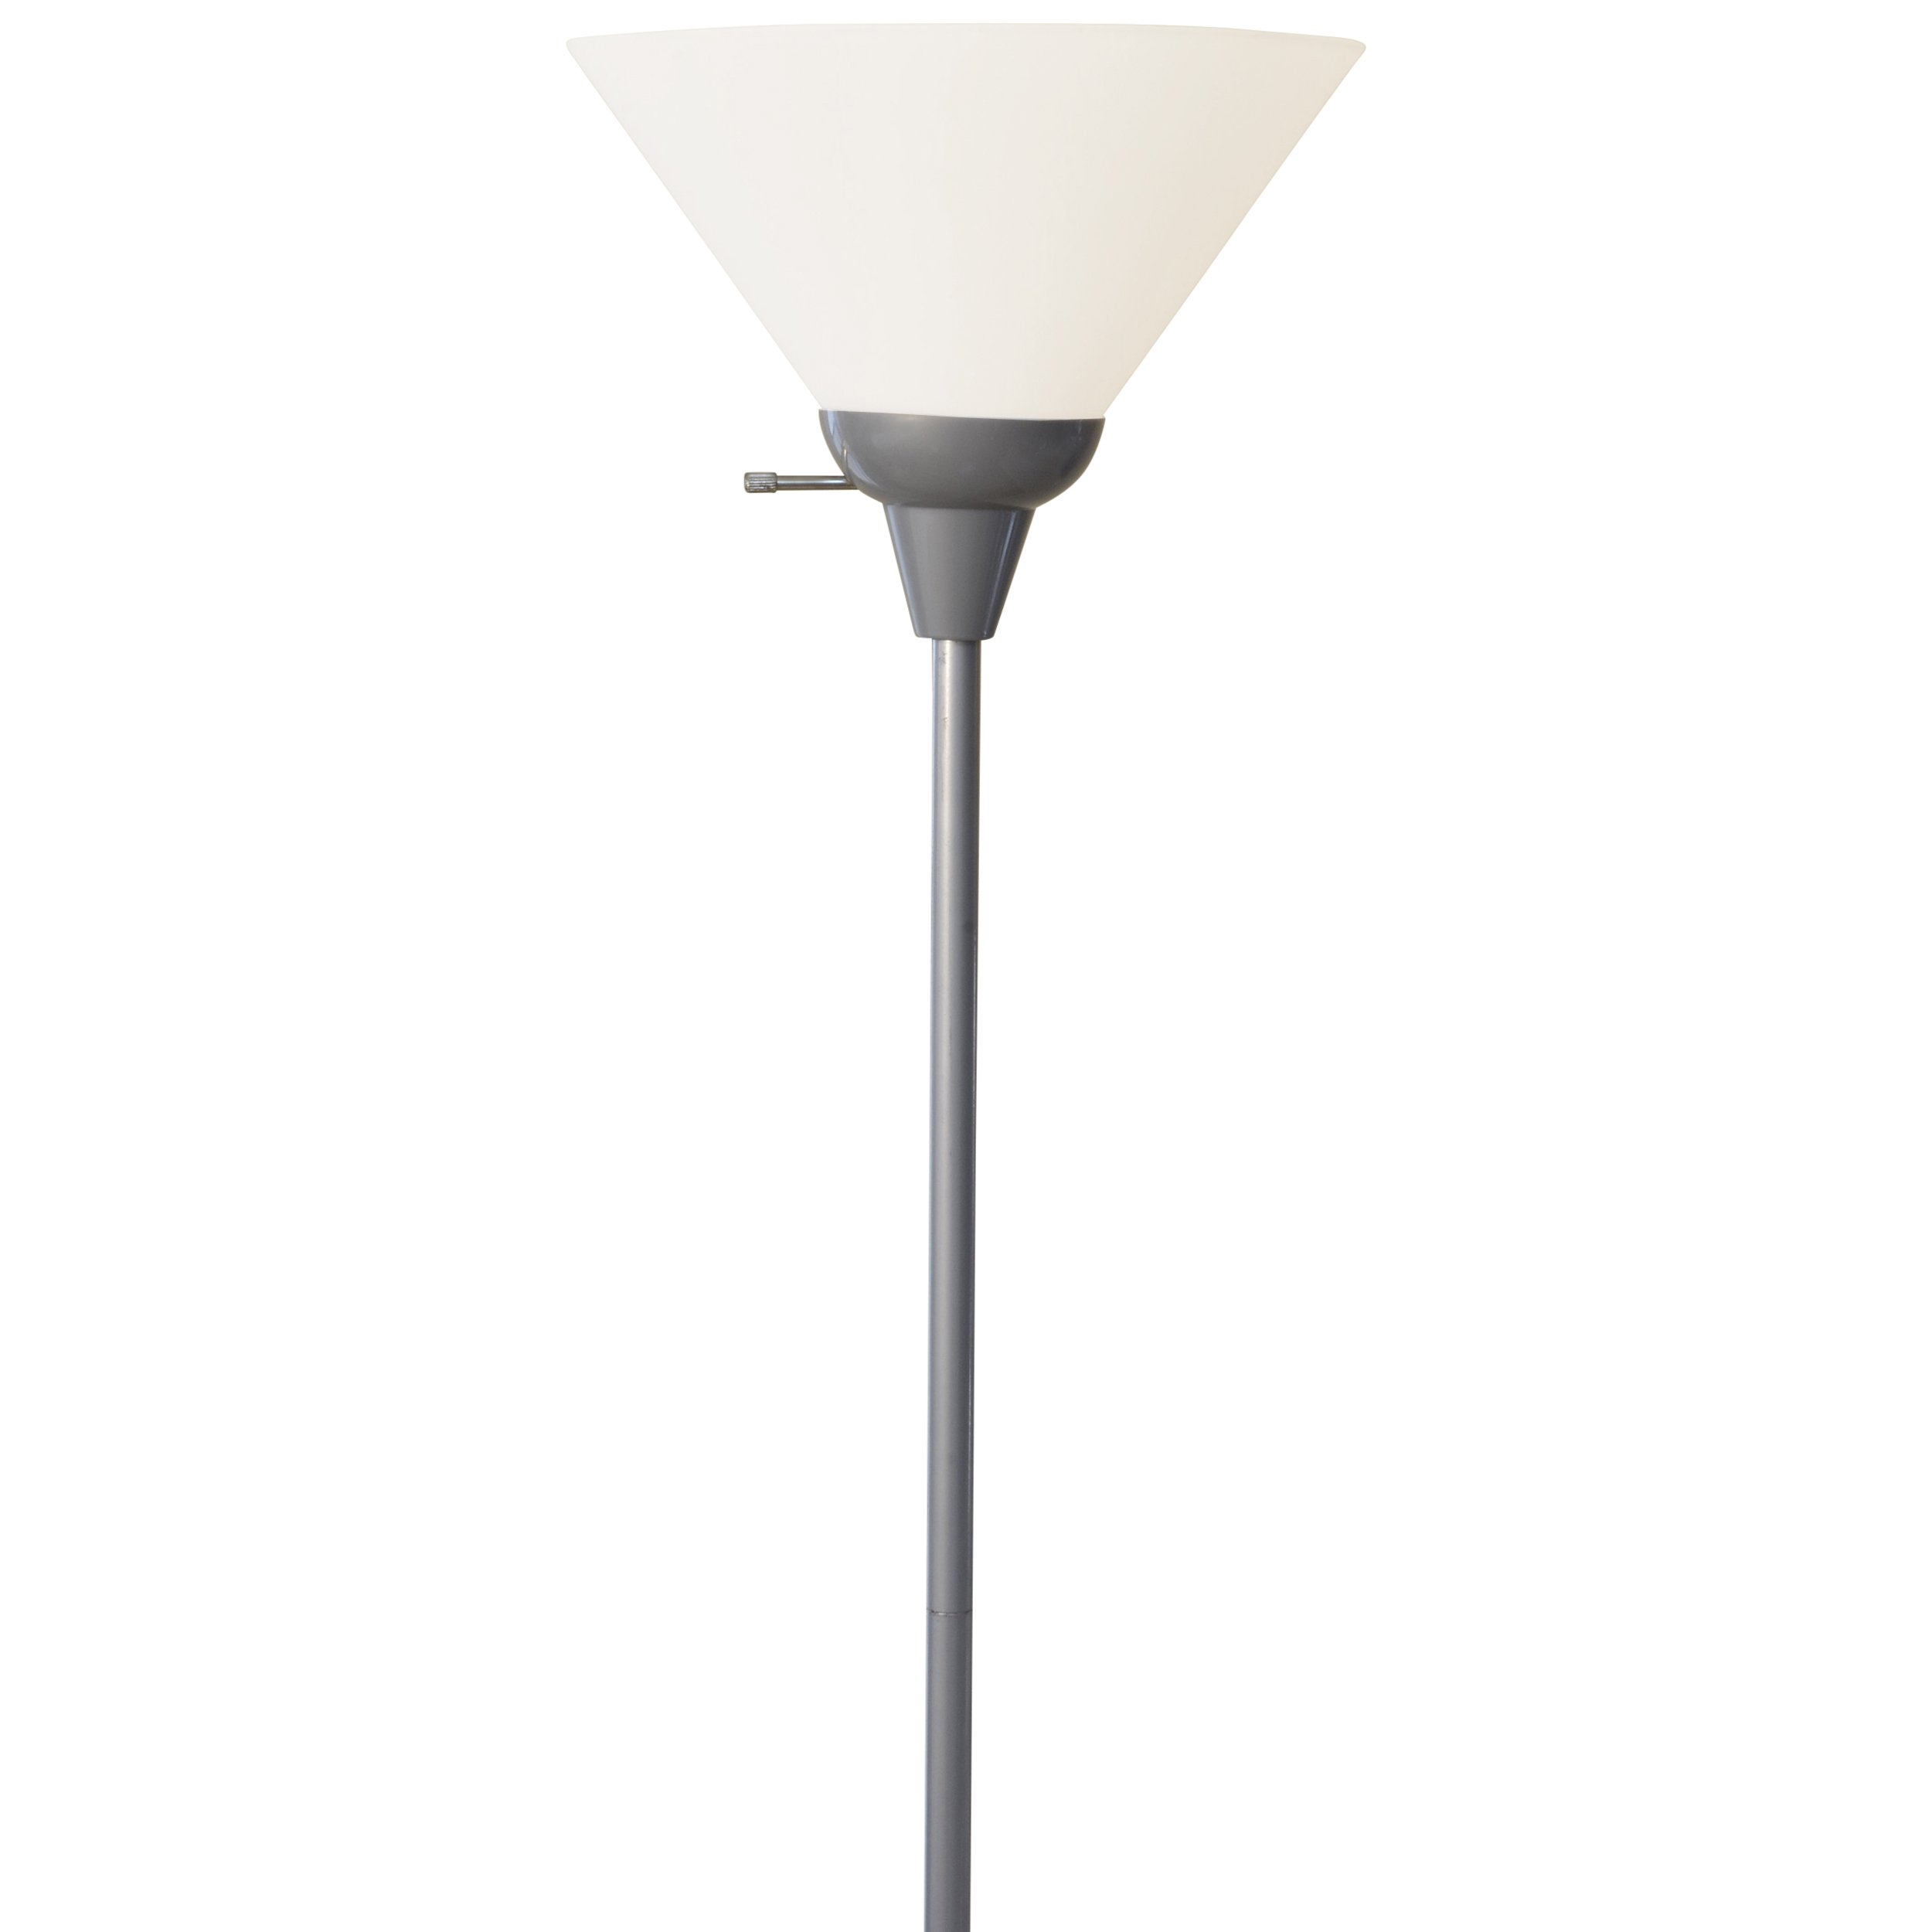 Light Accents Floor Lamp 72'' Tall Silver with White Shade